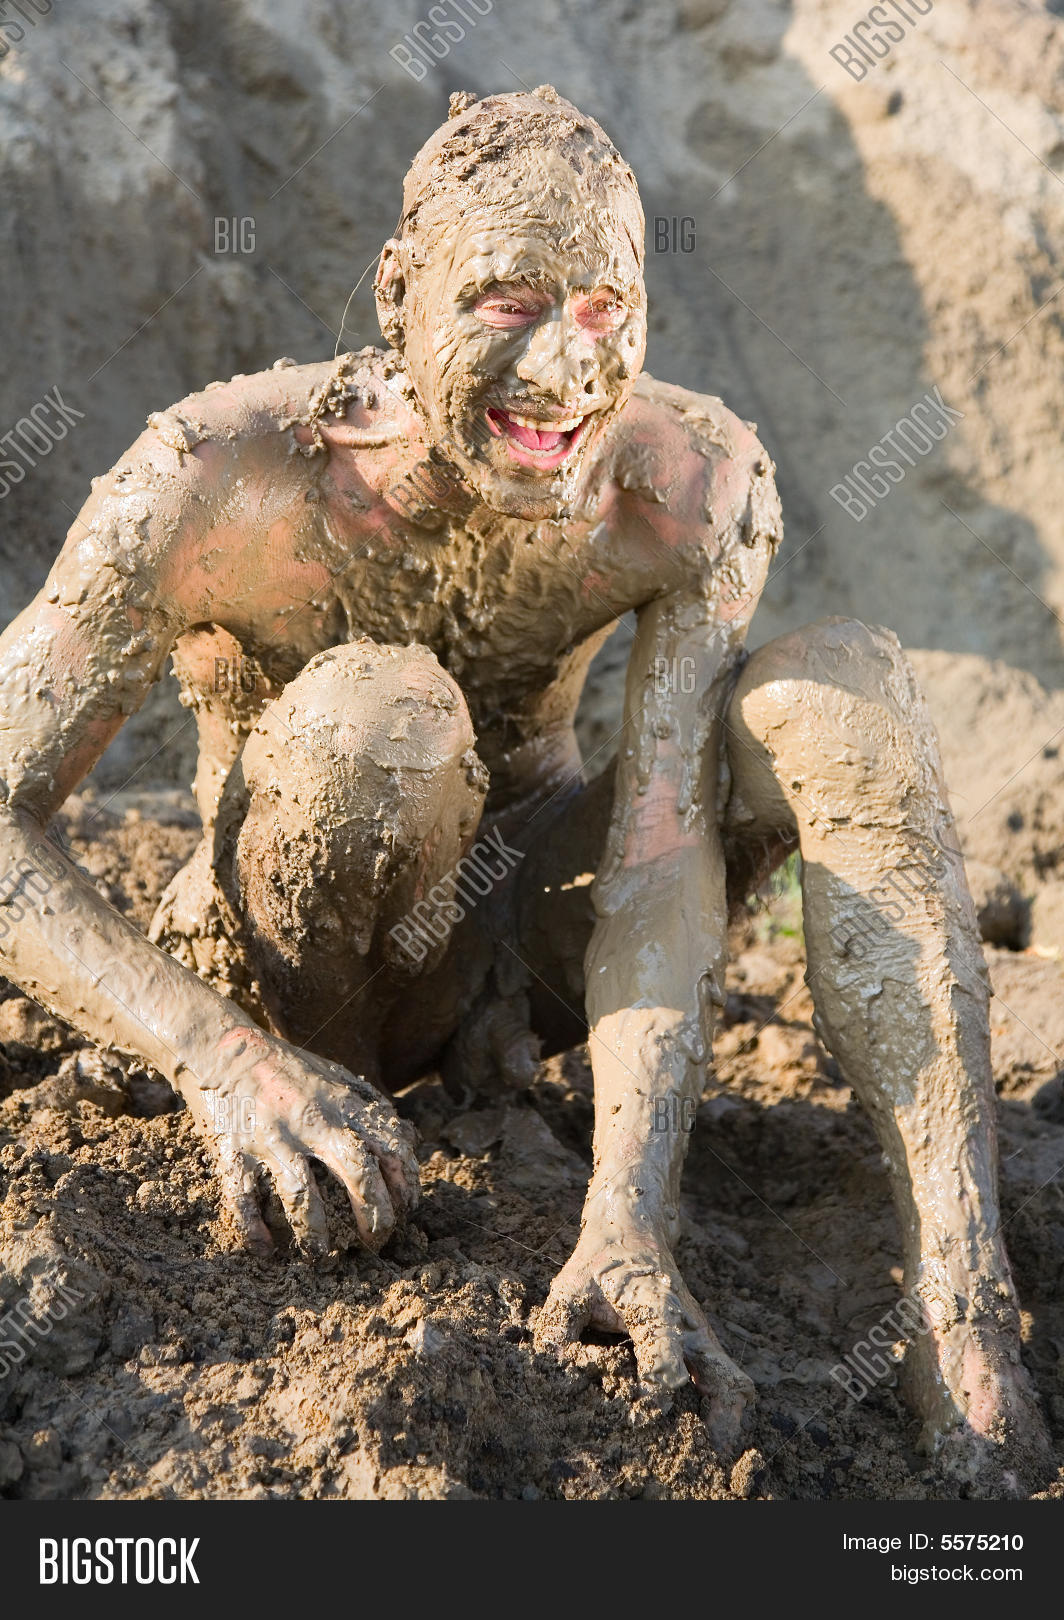 Naked Man Covered Mud Stock Photo 164035955 - Shutterstock